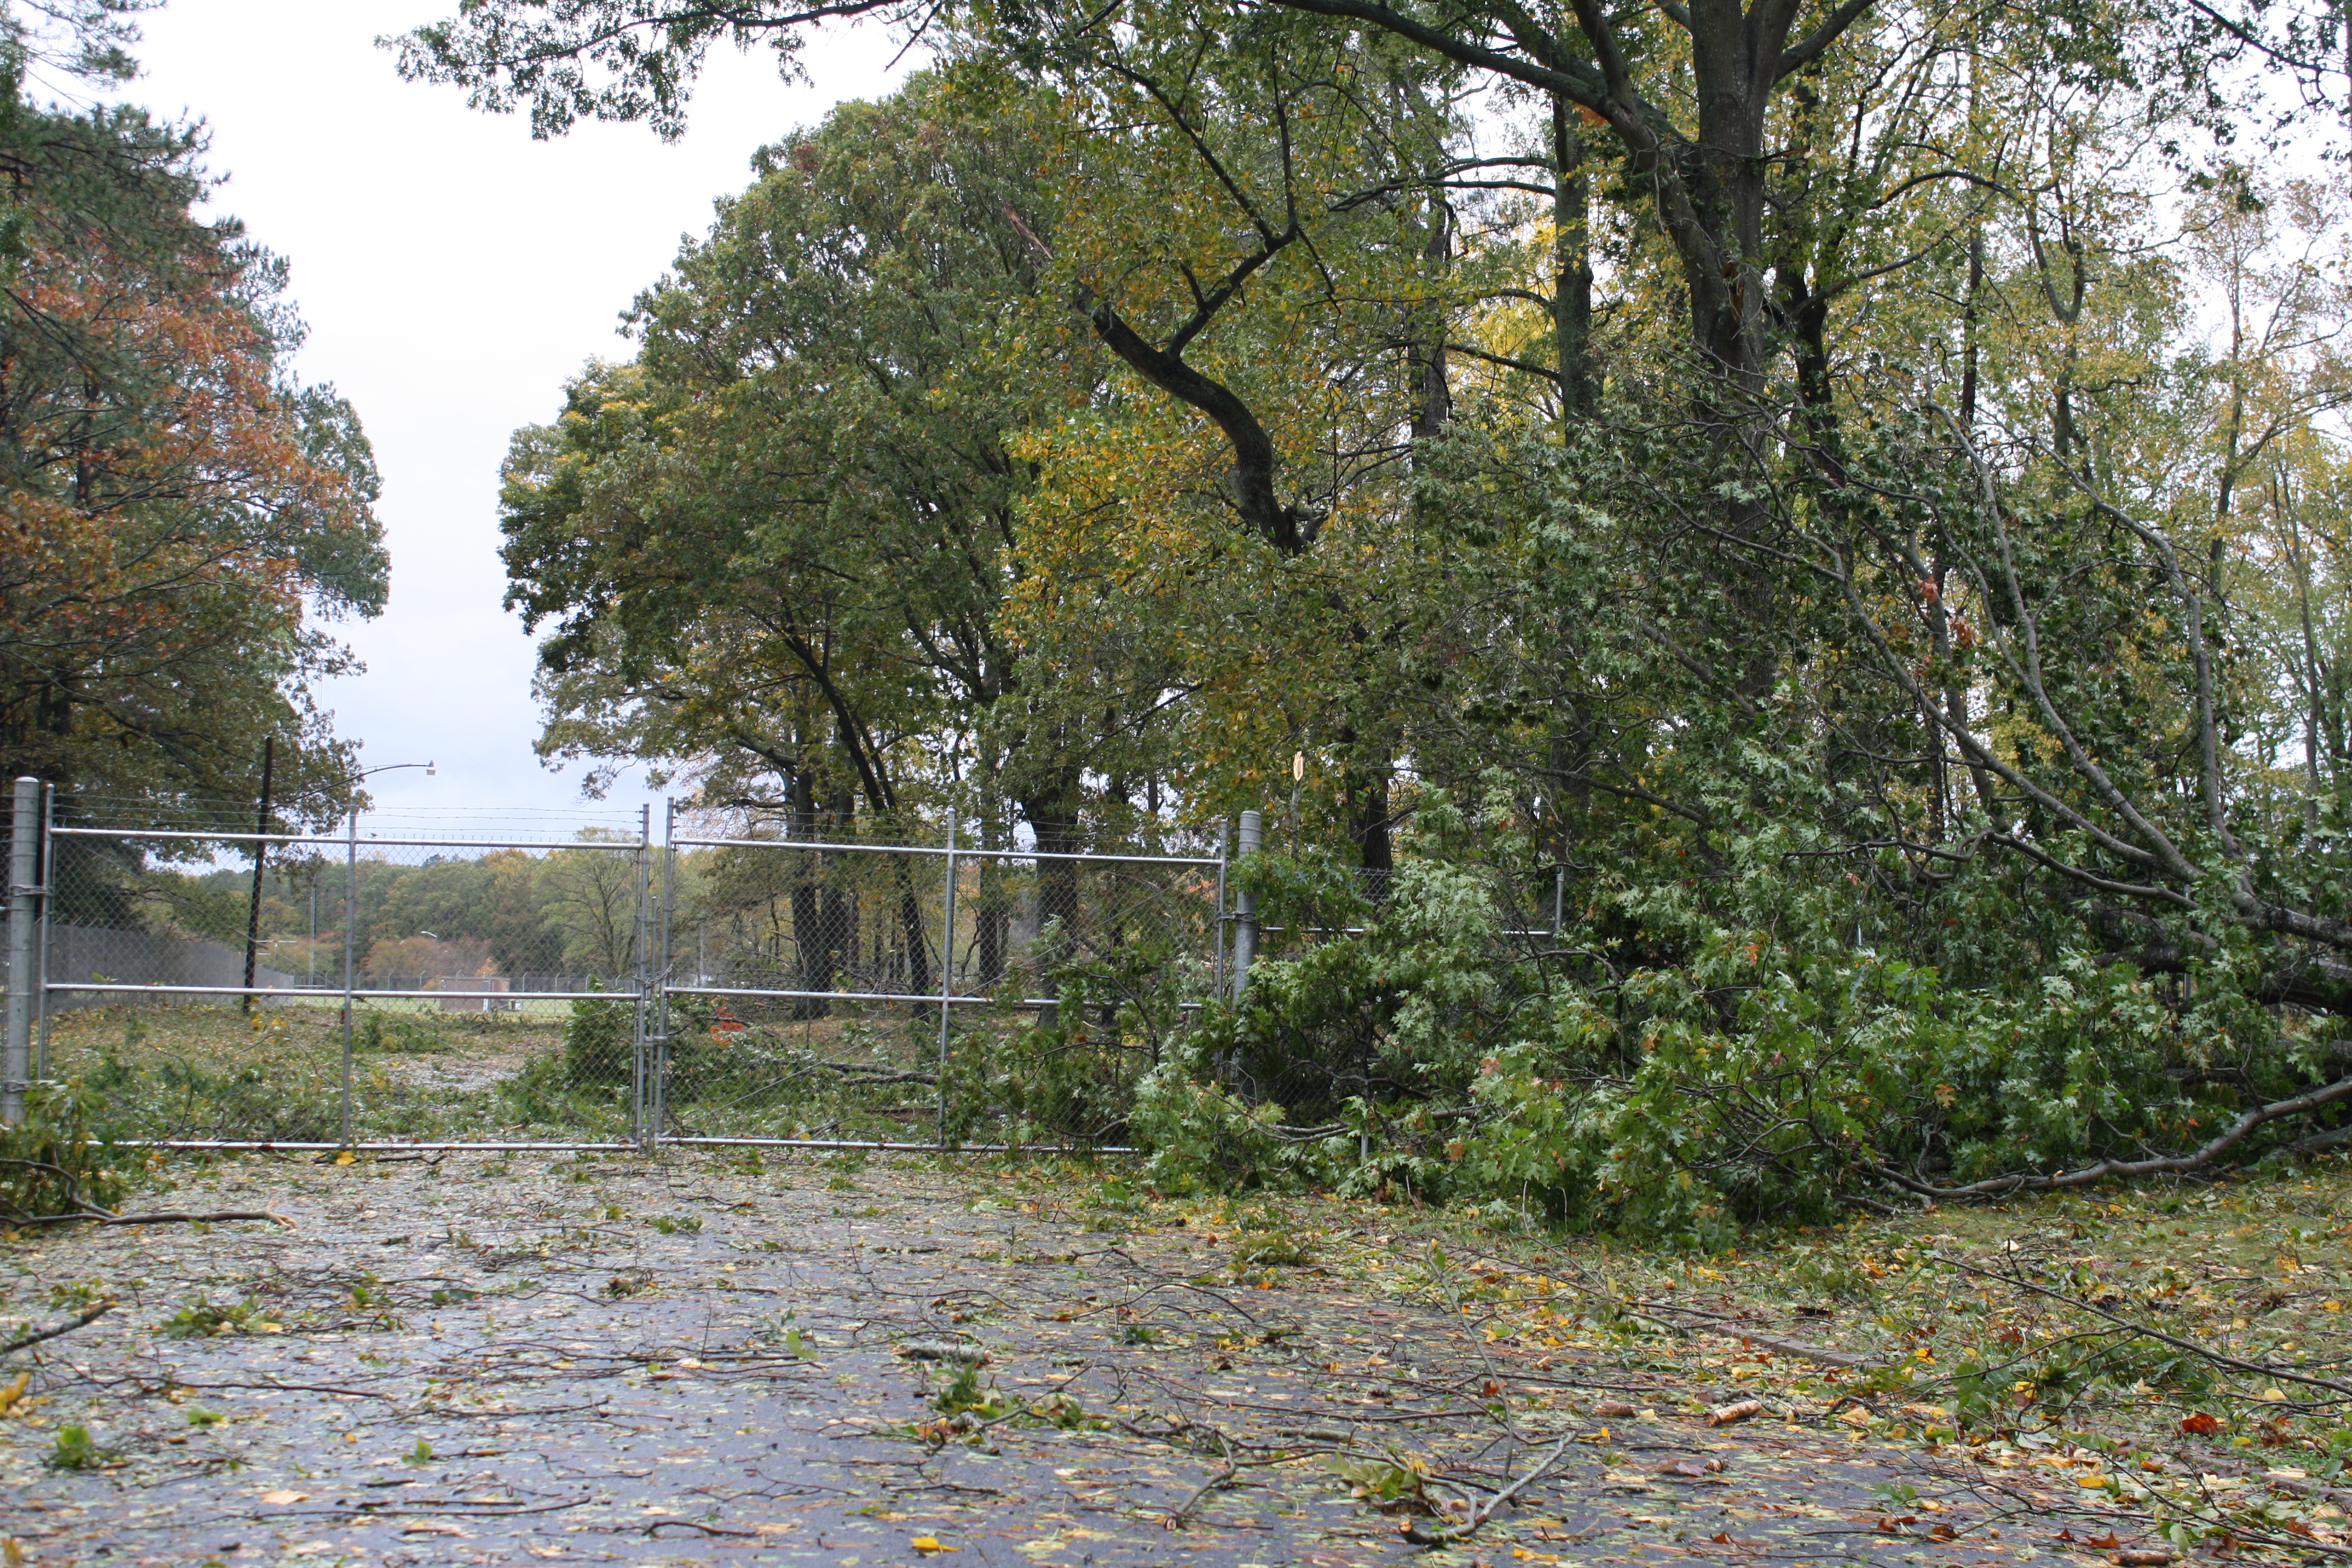 Trees were downed, but initial assessments show that Wallops faired well during Hurricane Sandy.